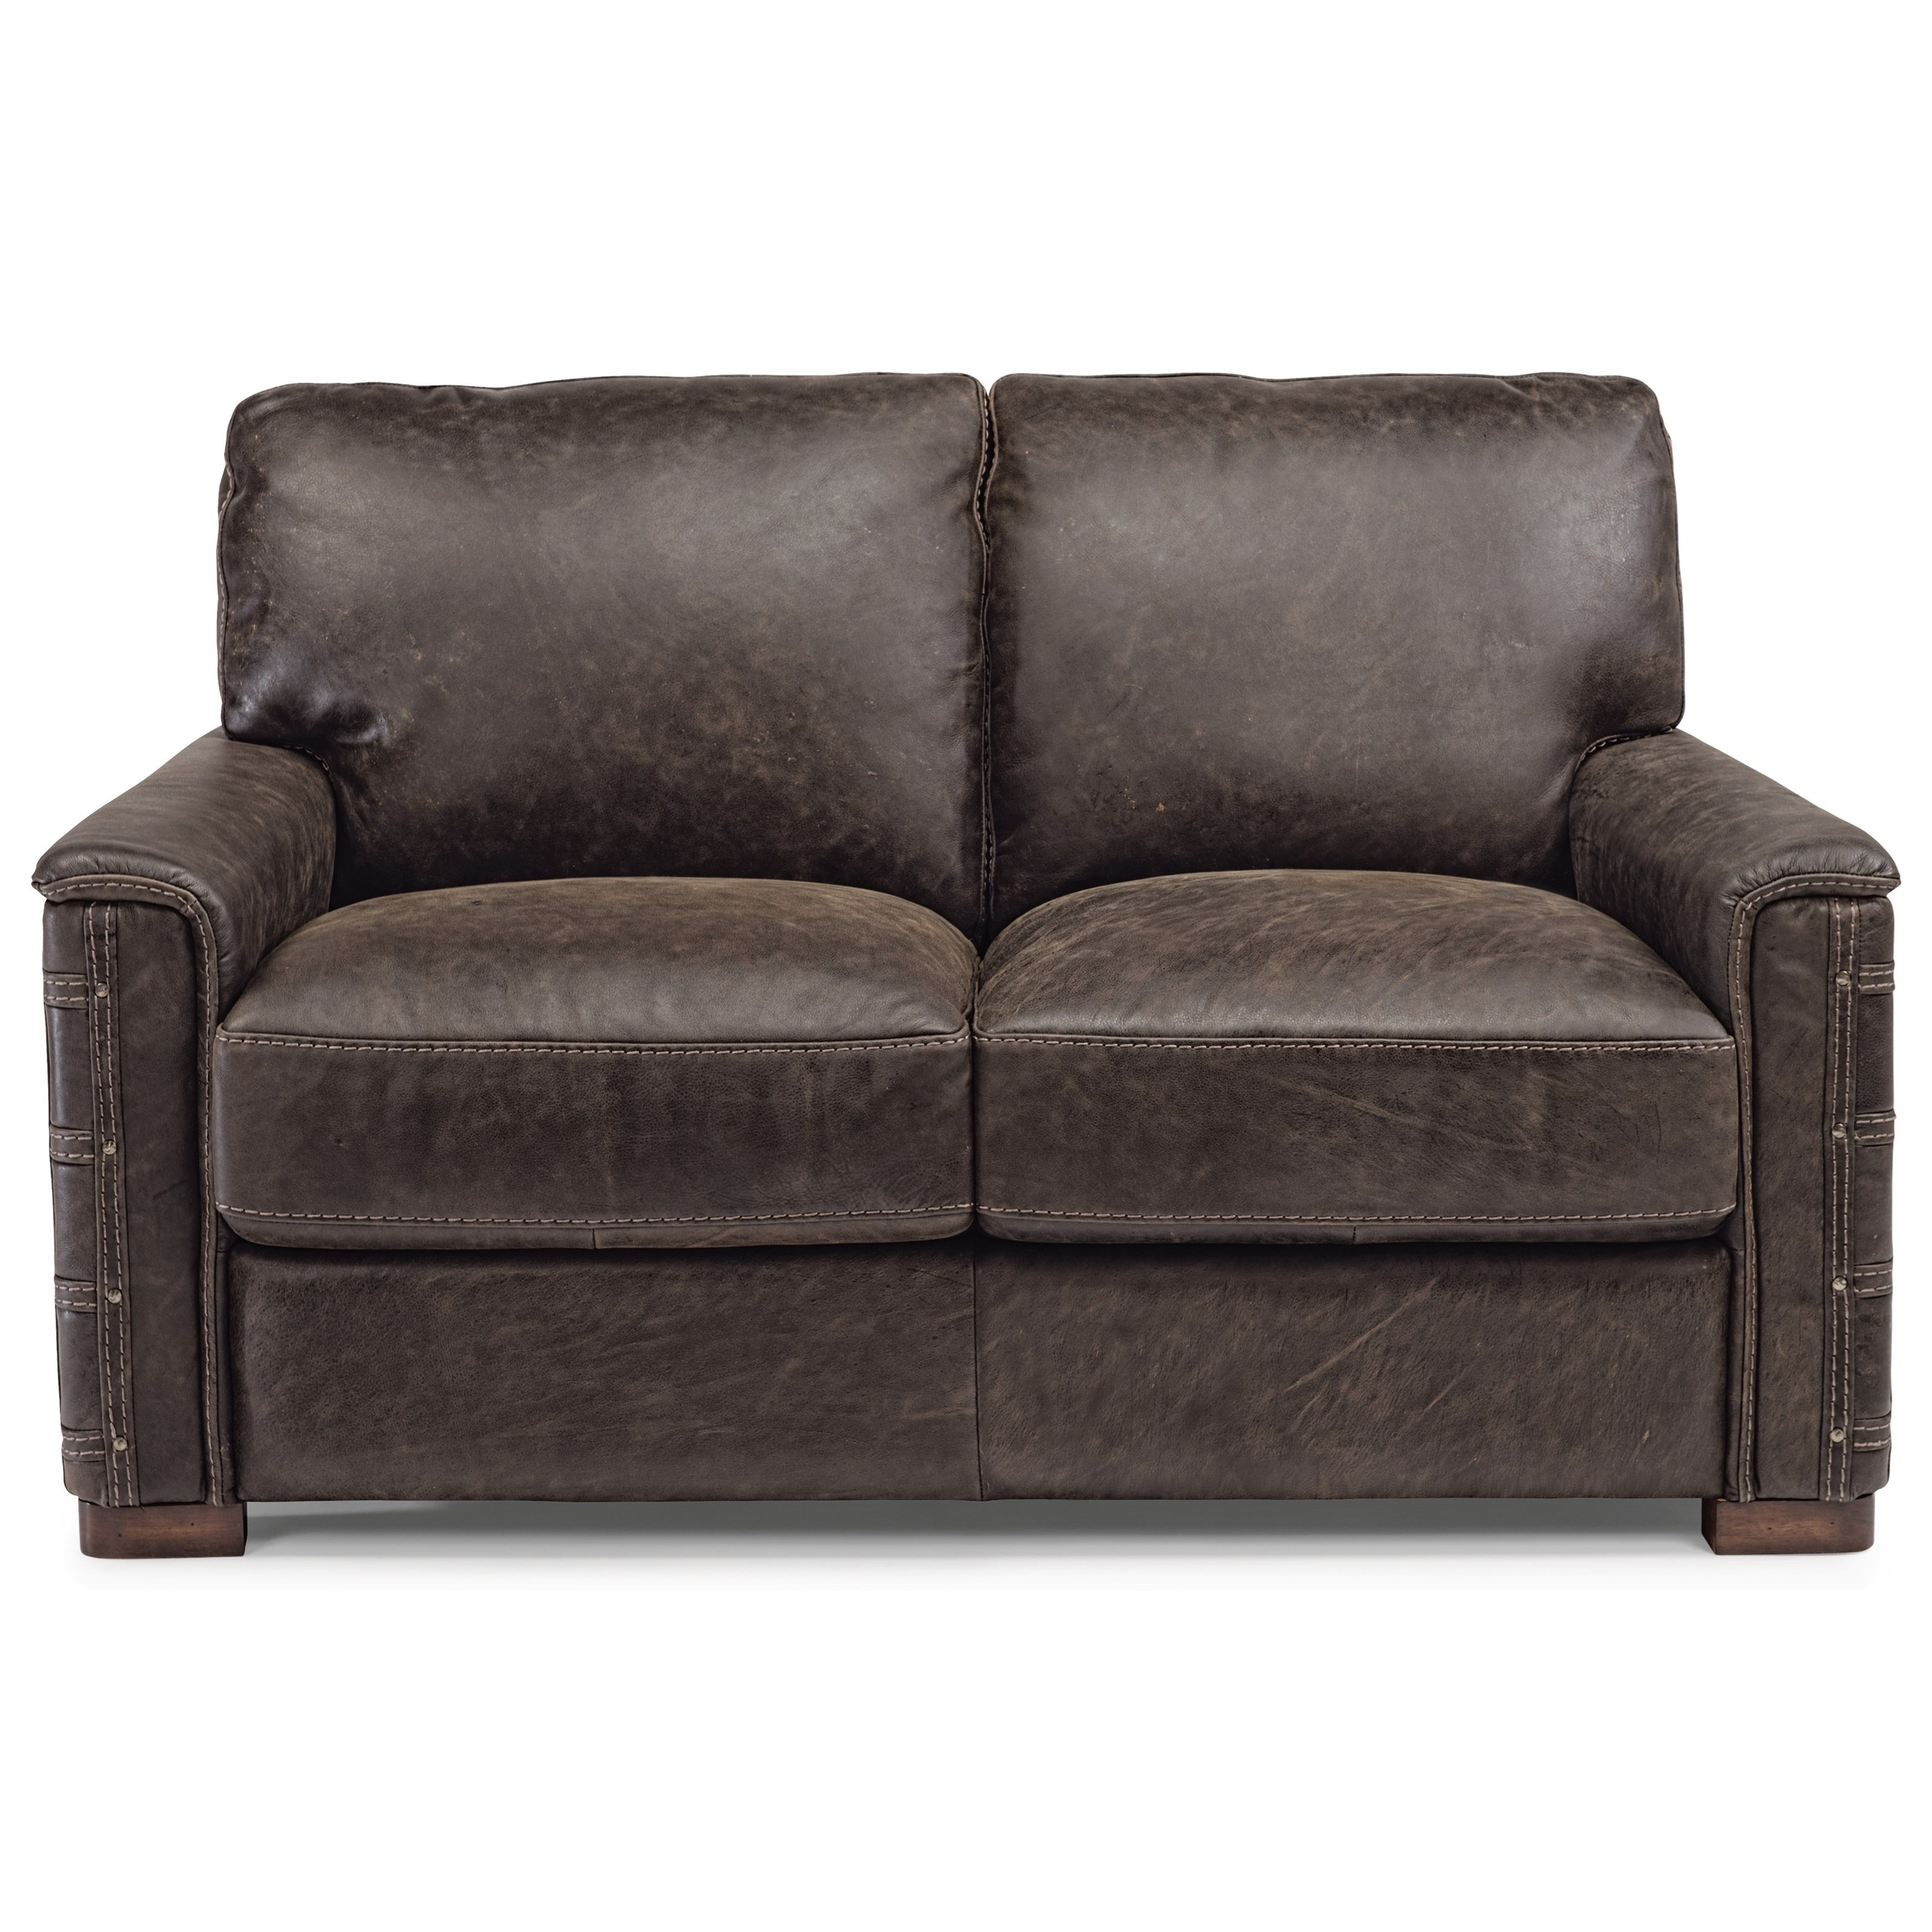 Surprising Latitudes Lomax Rustic Leather Loveseat With Nailhead Details By Flexsteel At Dunk Bright Furniture Andrewgaddart Wooden Chair Designs For Living Room Andrewgaddartcom